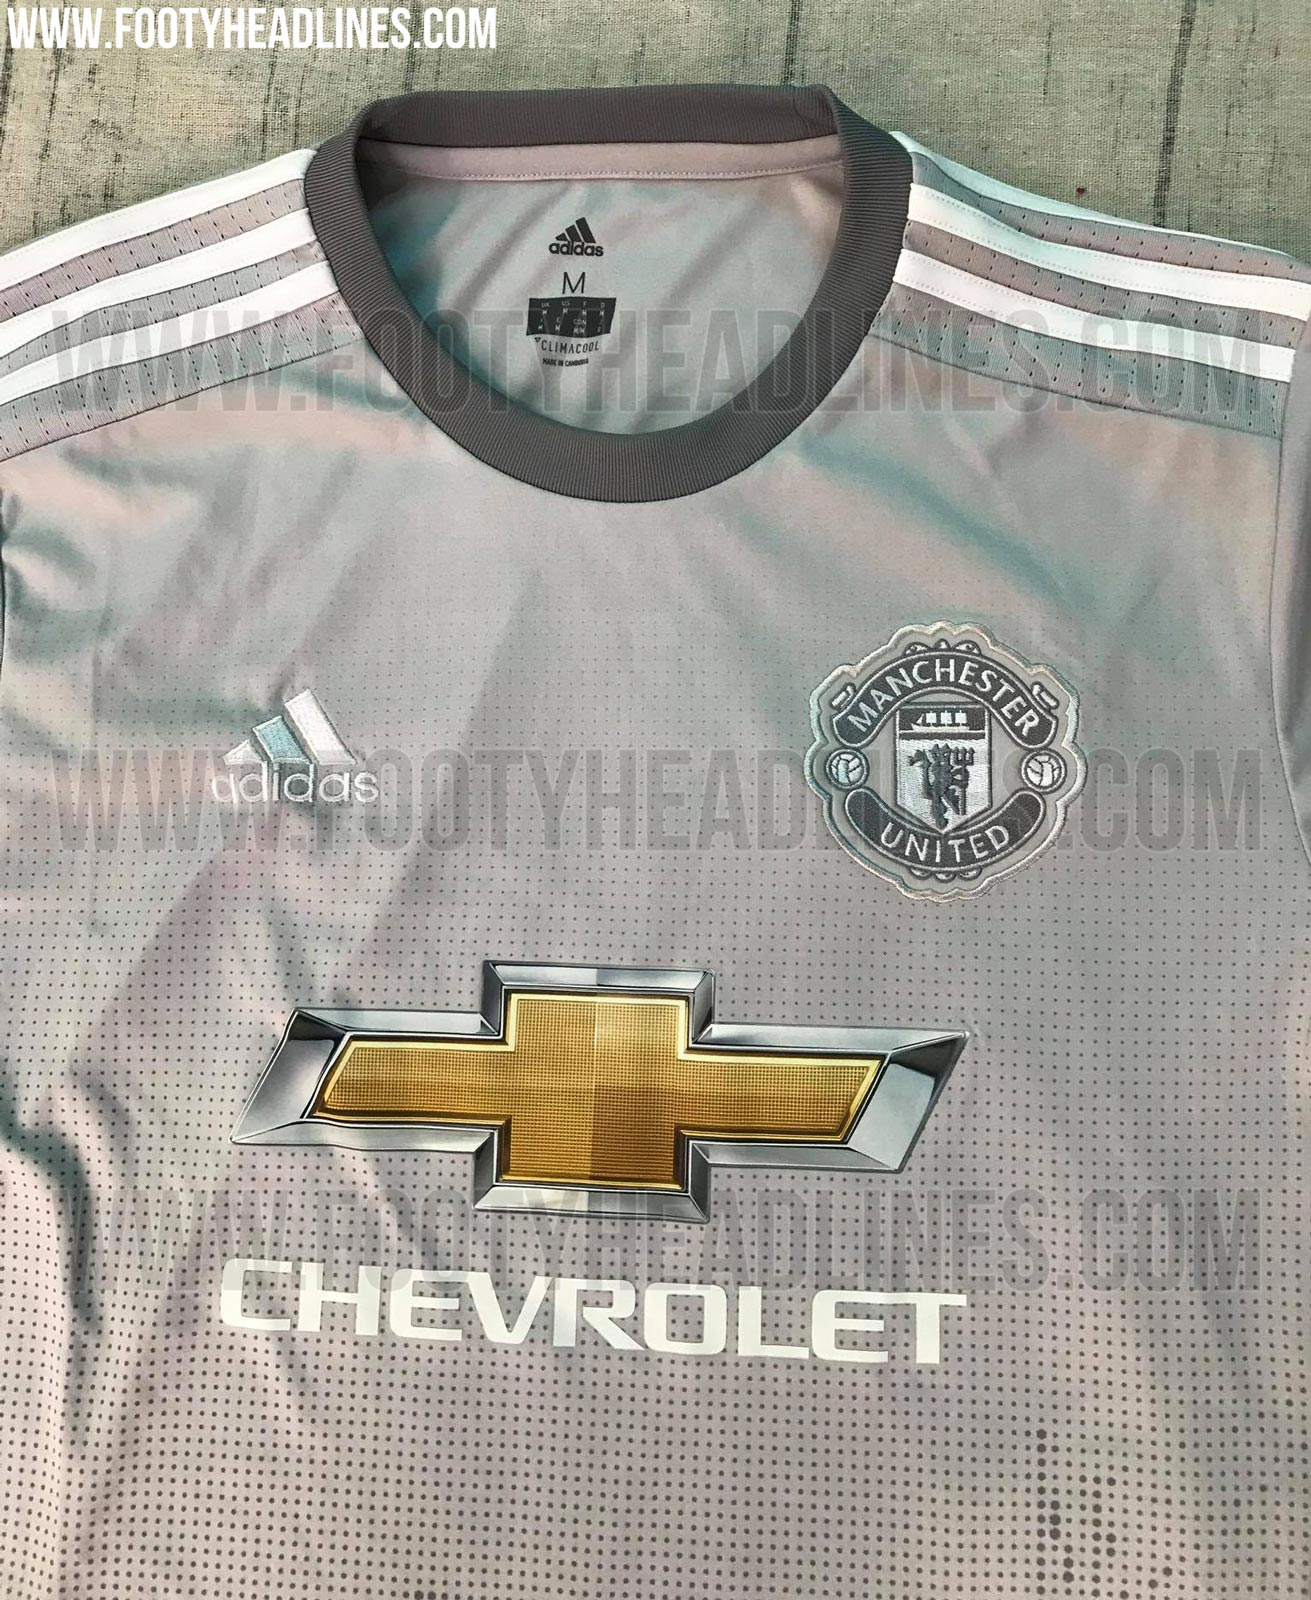 finest selection 8d325 40dcd Leaked images appear to confirm that Man United's next third ...